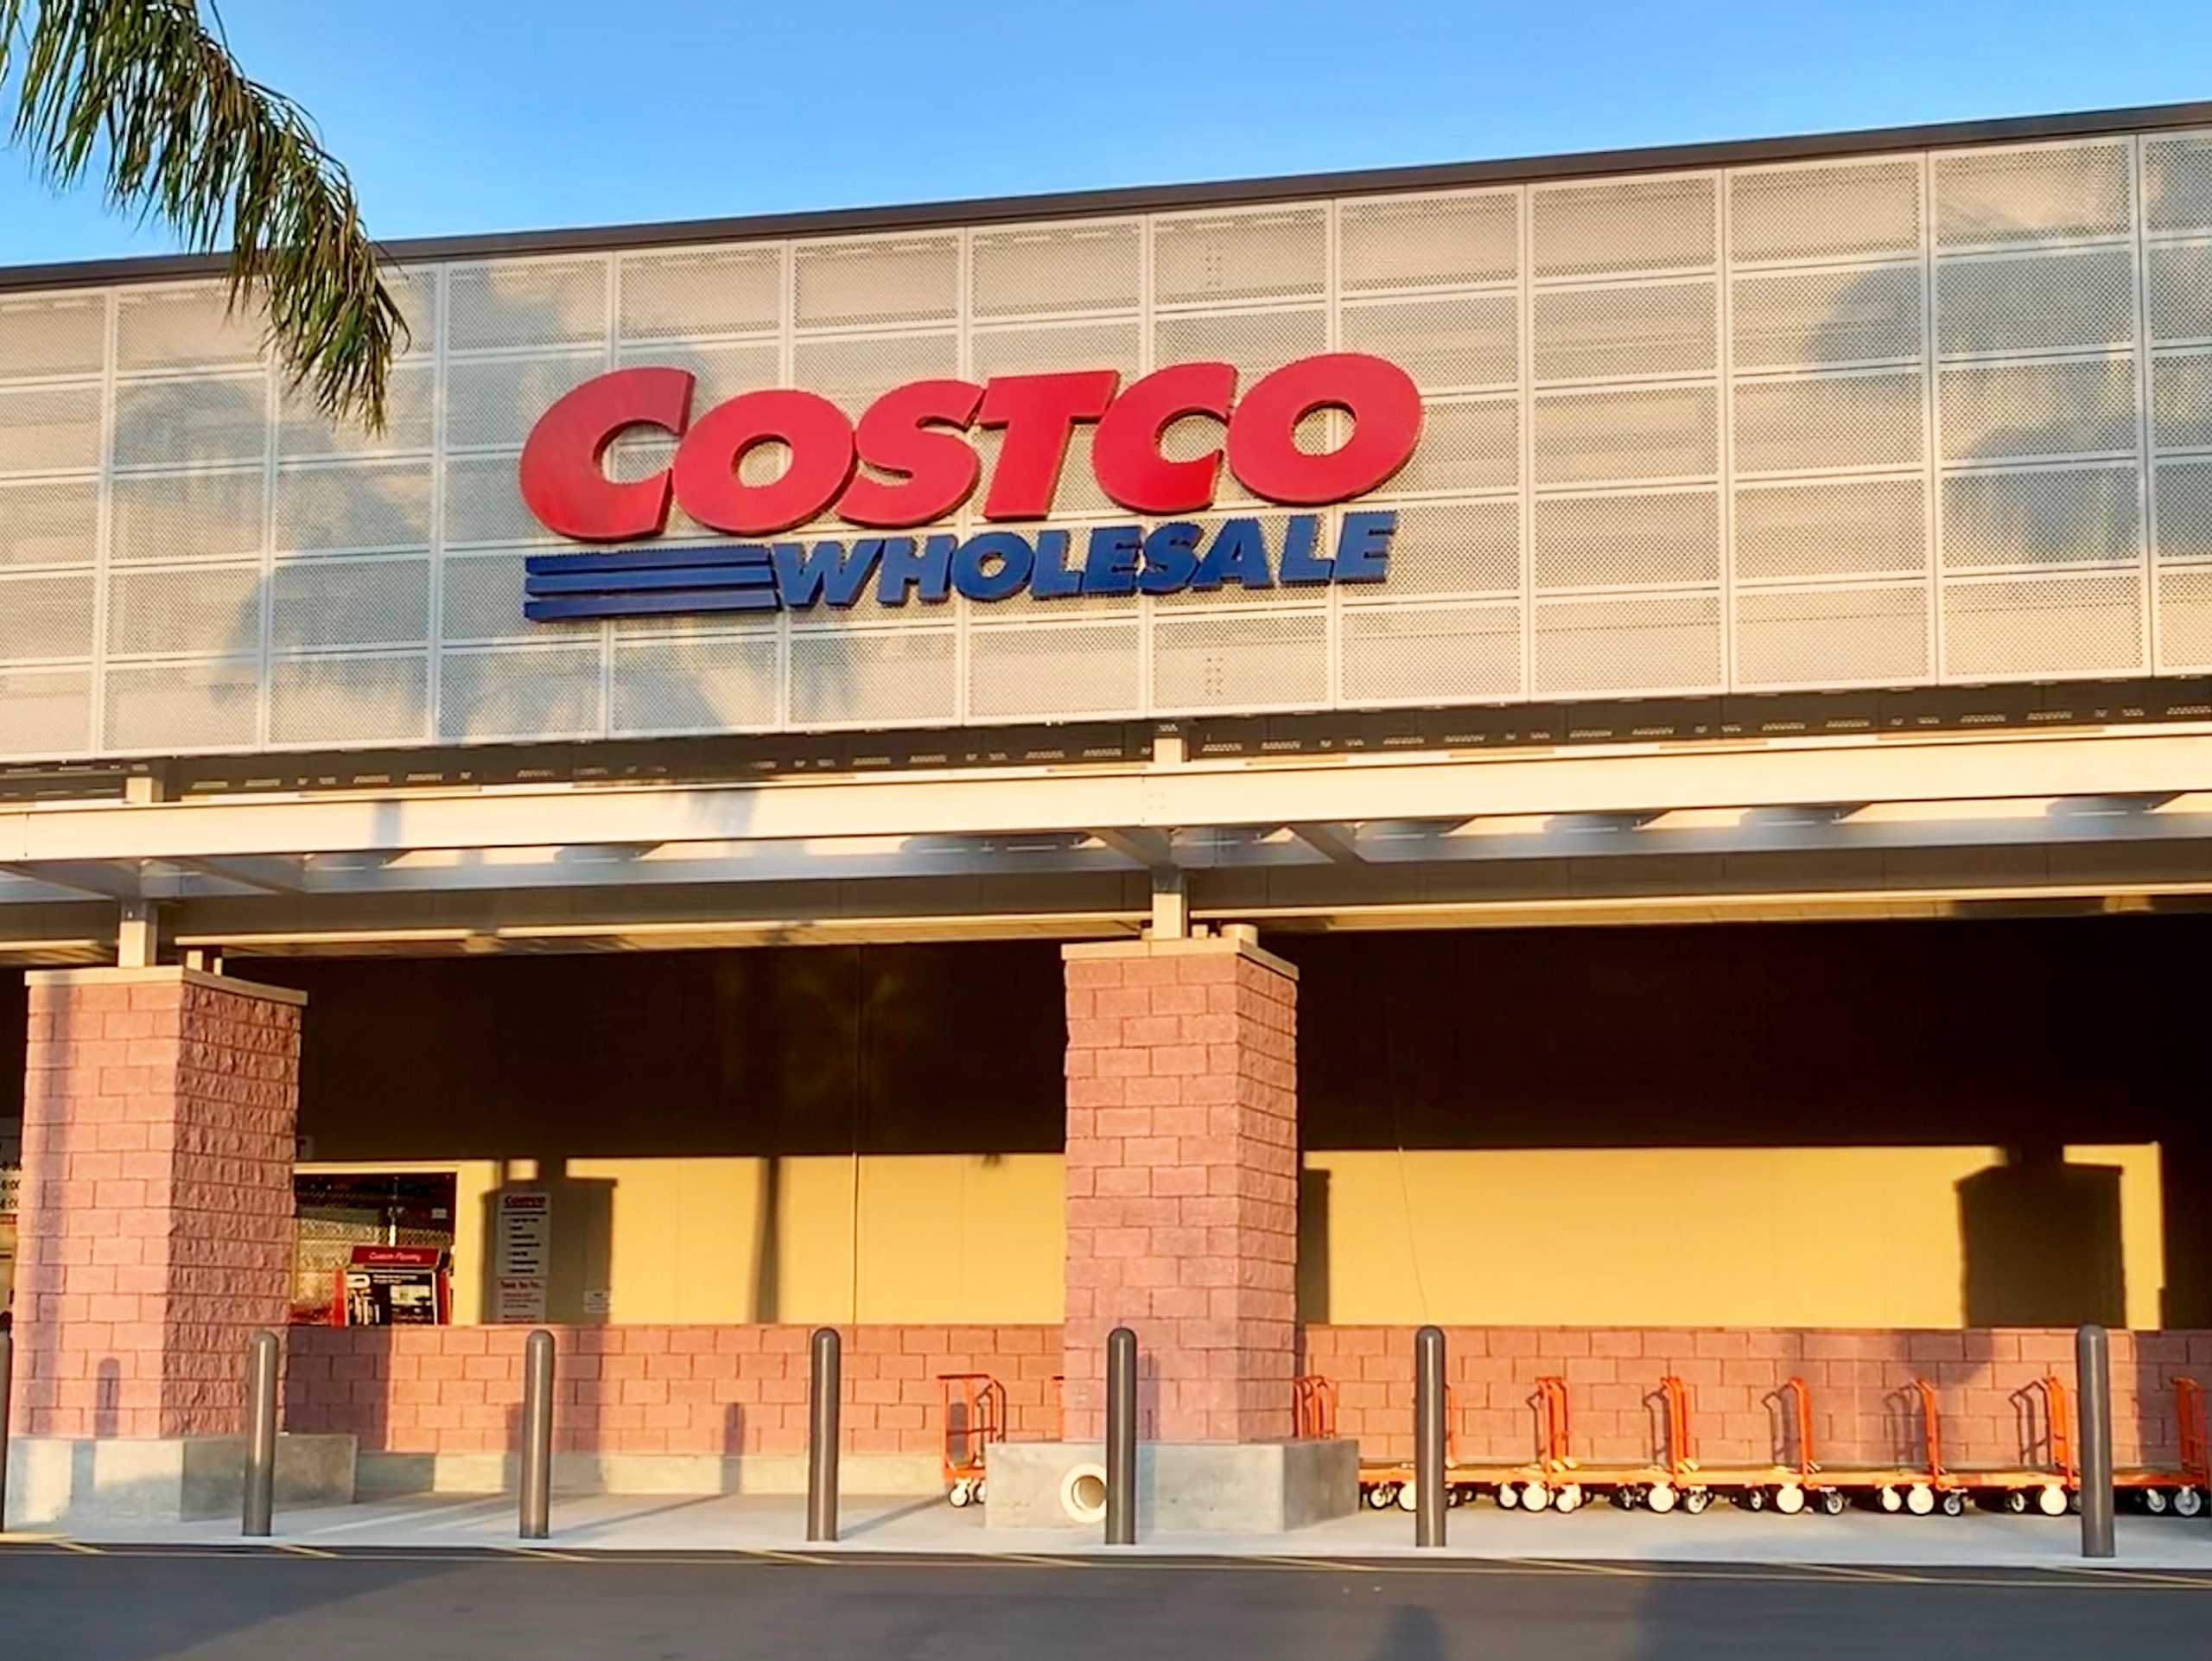 Memorial Day sales 2021: Home Depot, Lowe's, Target, Walmart are open Monday, but Costco is closed